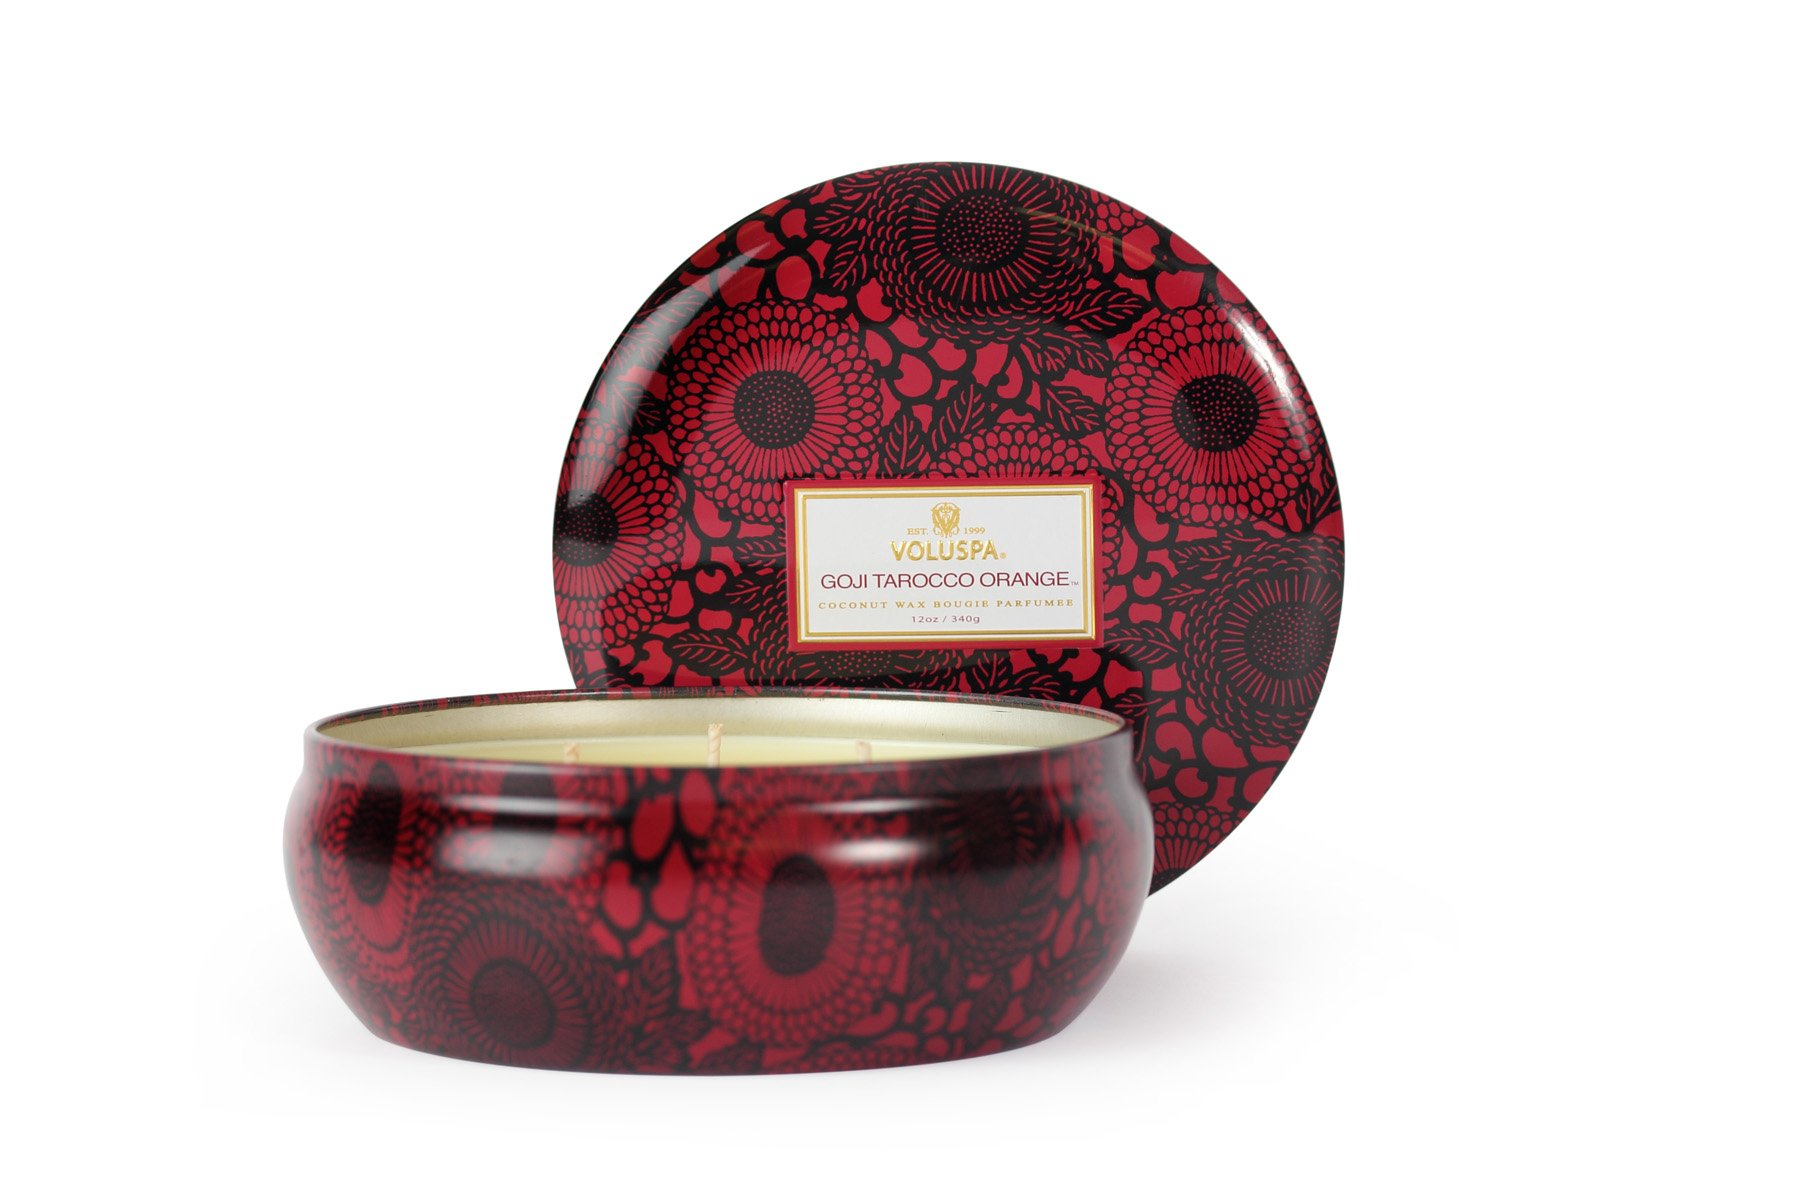 Voluspa Goji and Tarocco Orange 3 Wick Candle In Decorative Tin, 12 Ounce